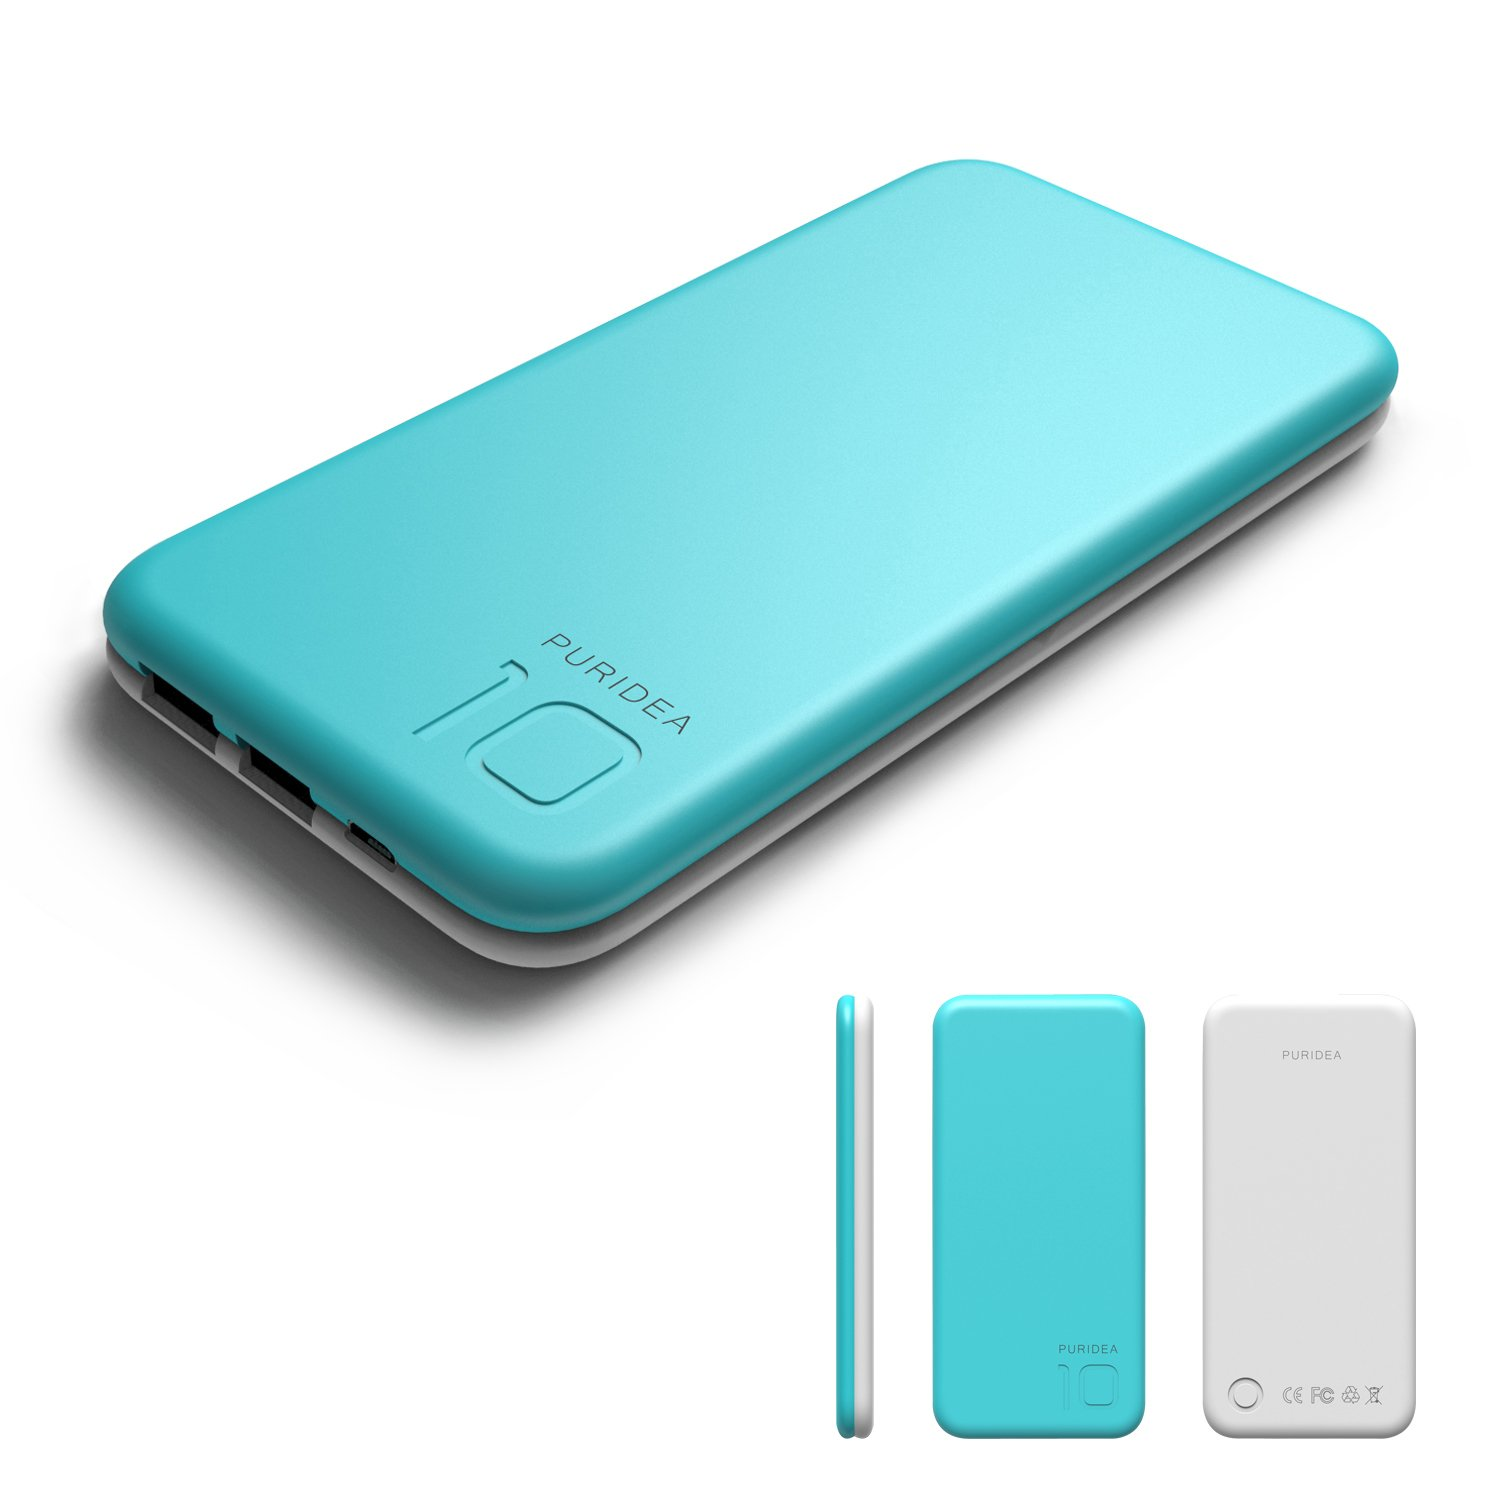 PURIDEA Portable Charger mAh Power Bank Bi color Amazon Electronics